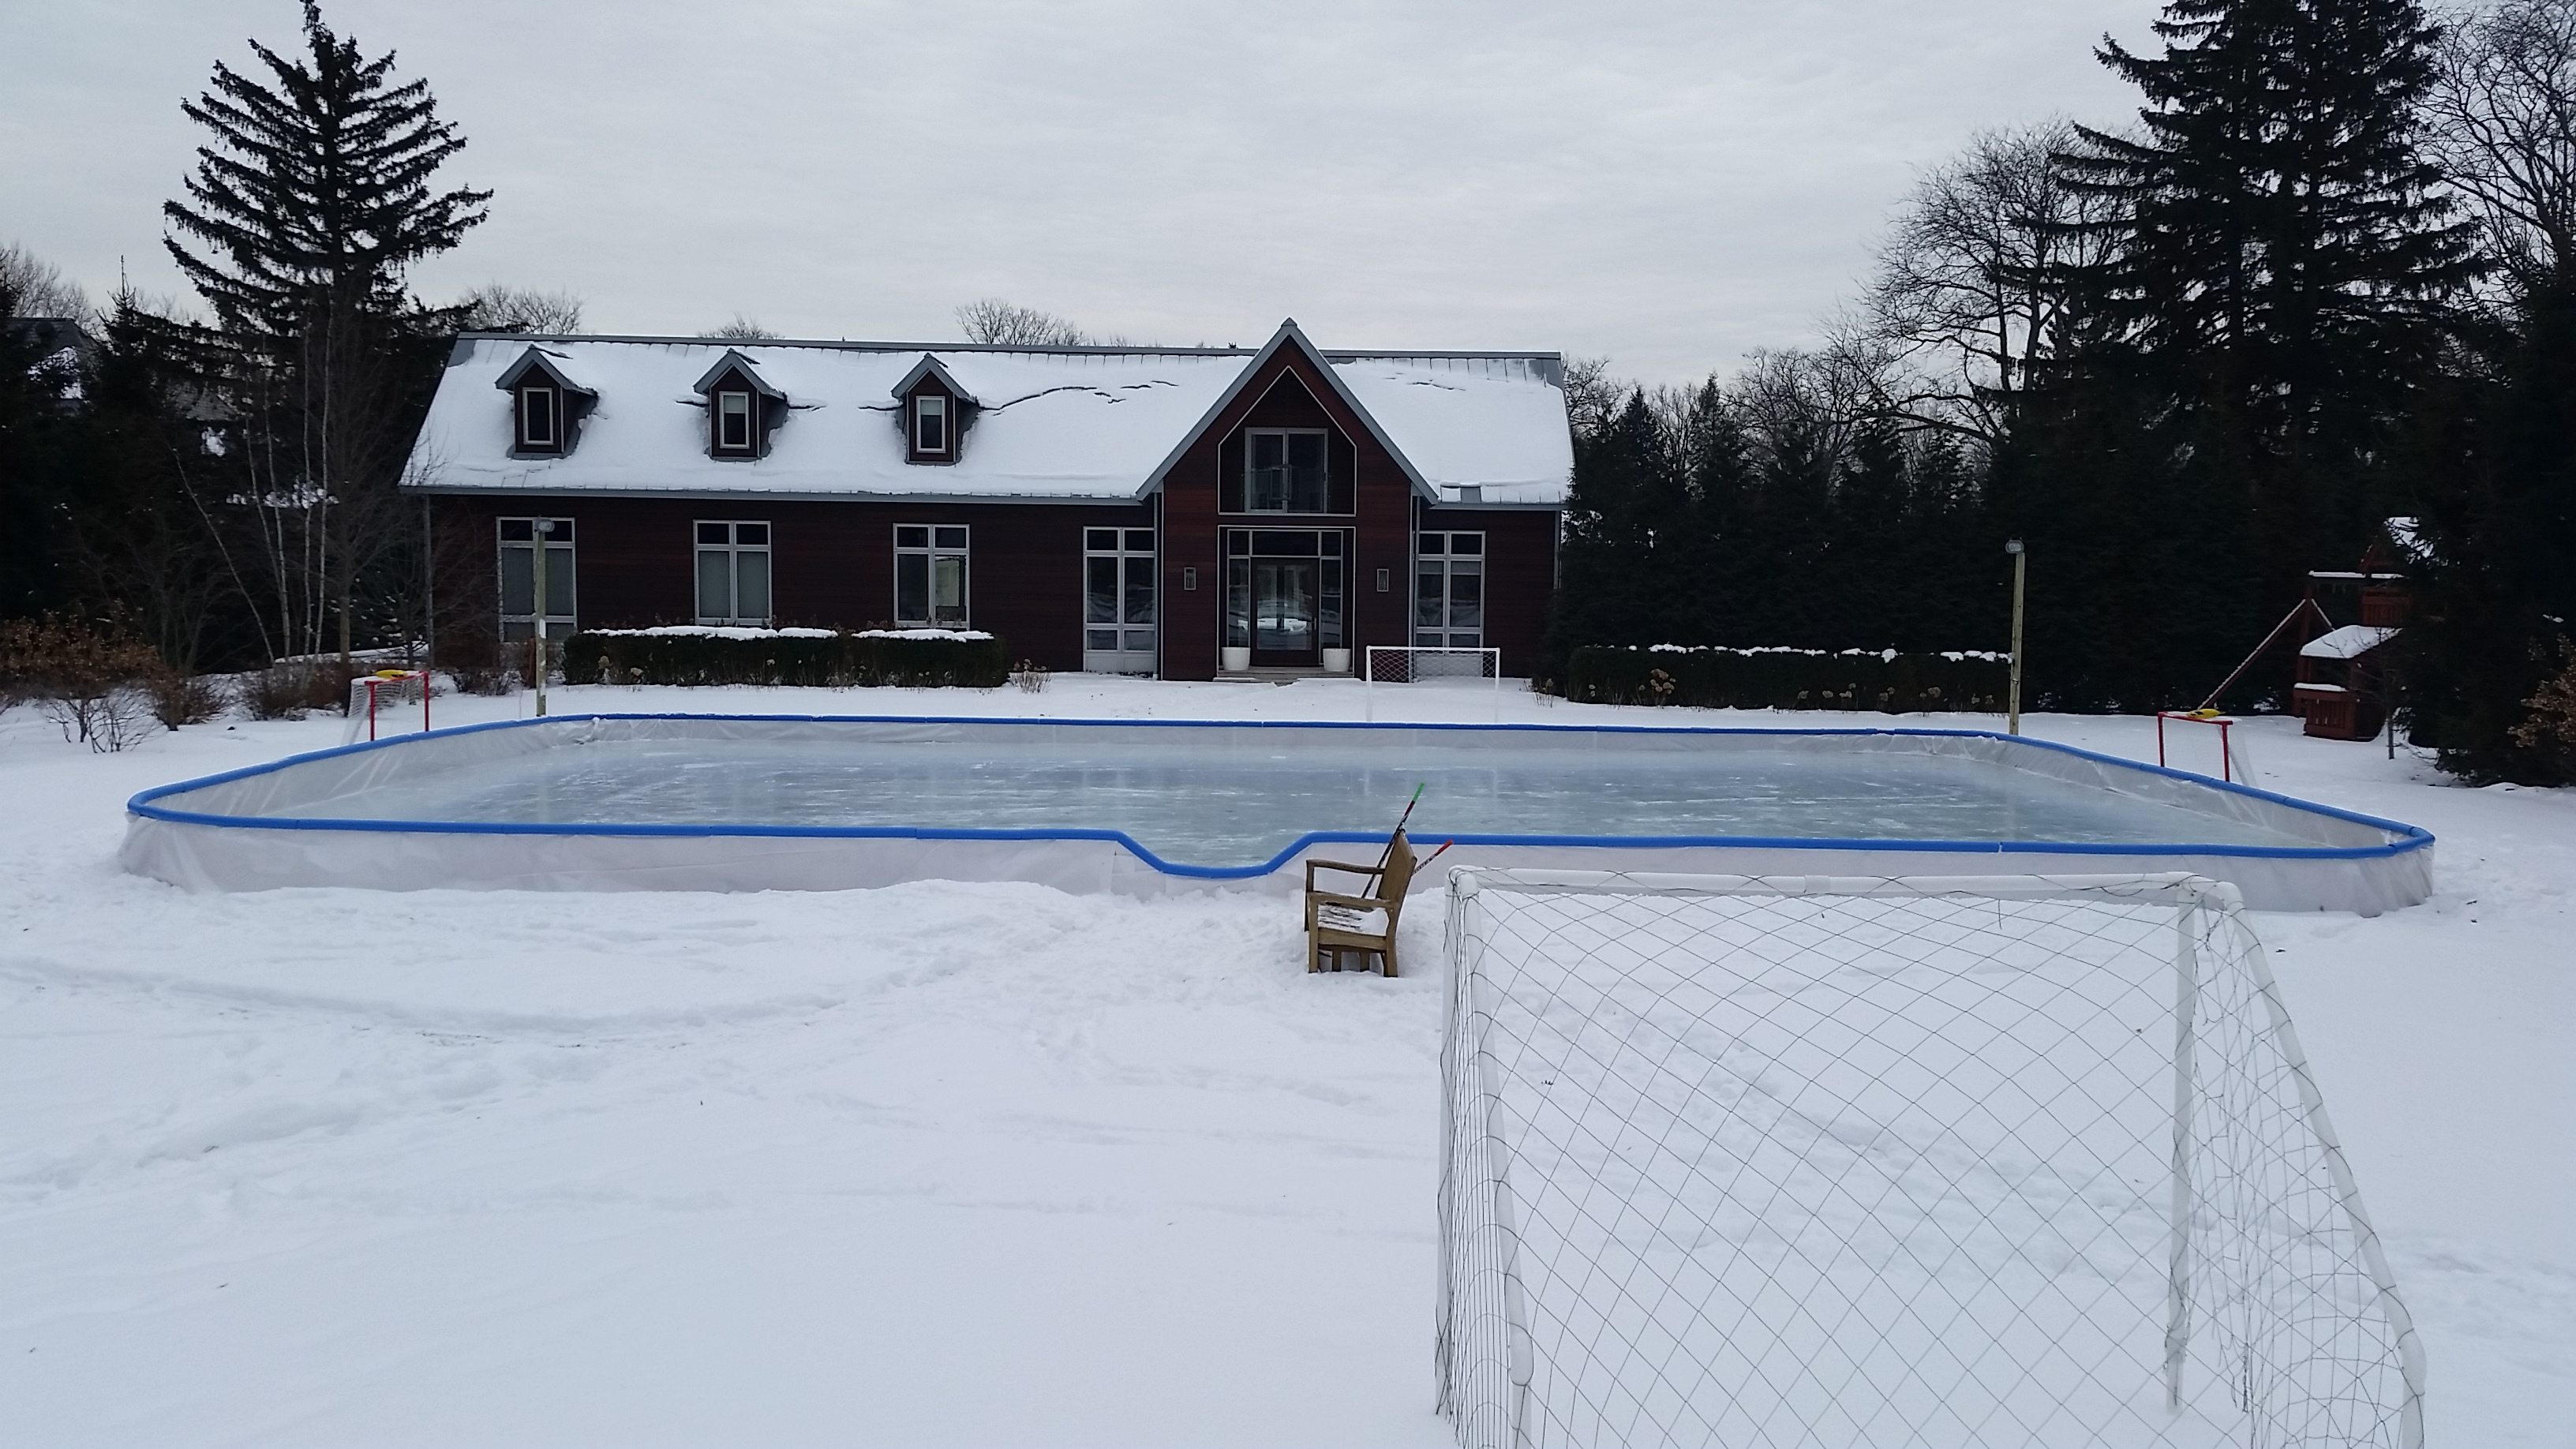 Charmant Backyard Rink With Rounded Corners. 24